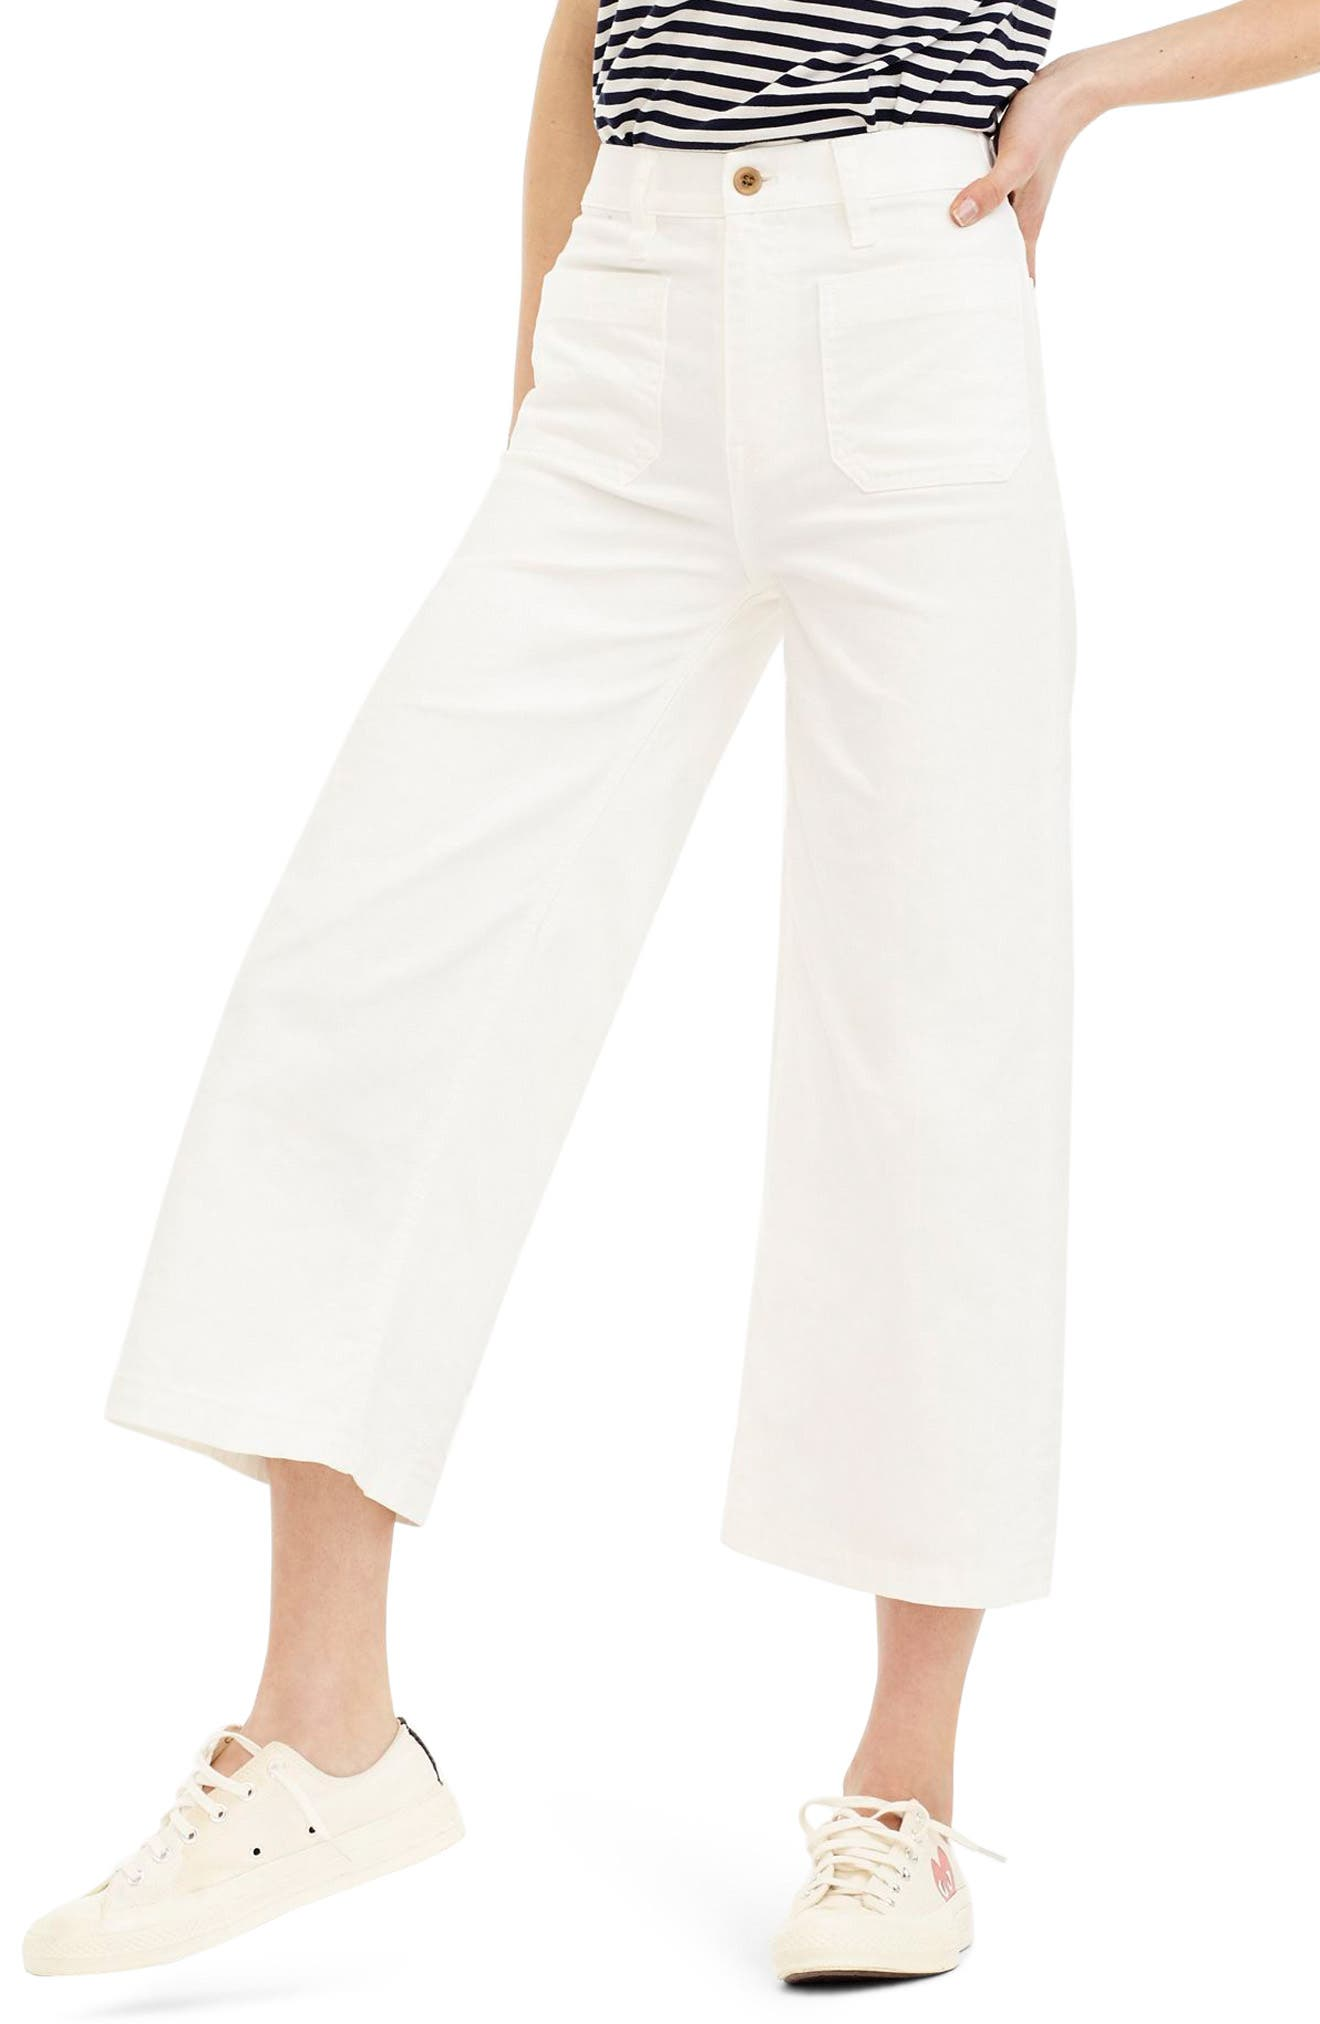 Point Sur Wide Leg Crop Jeans,                             Main thumbnail 1, color,                             100